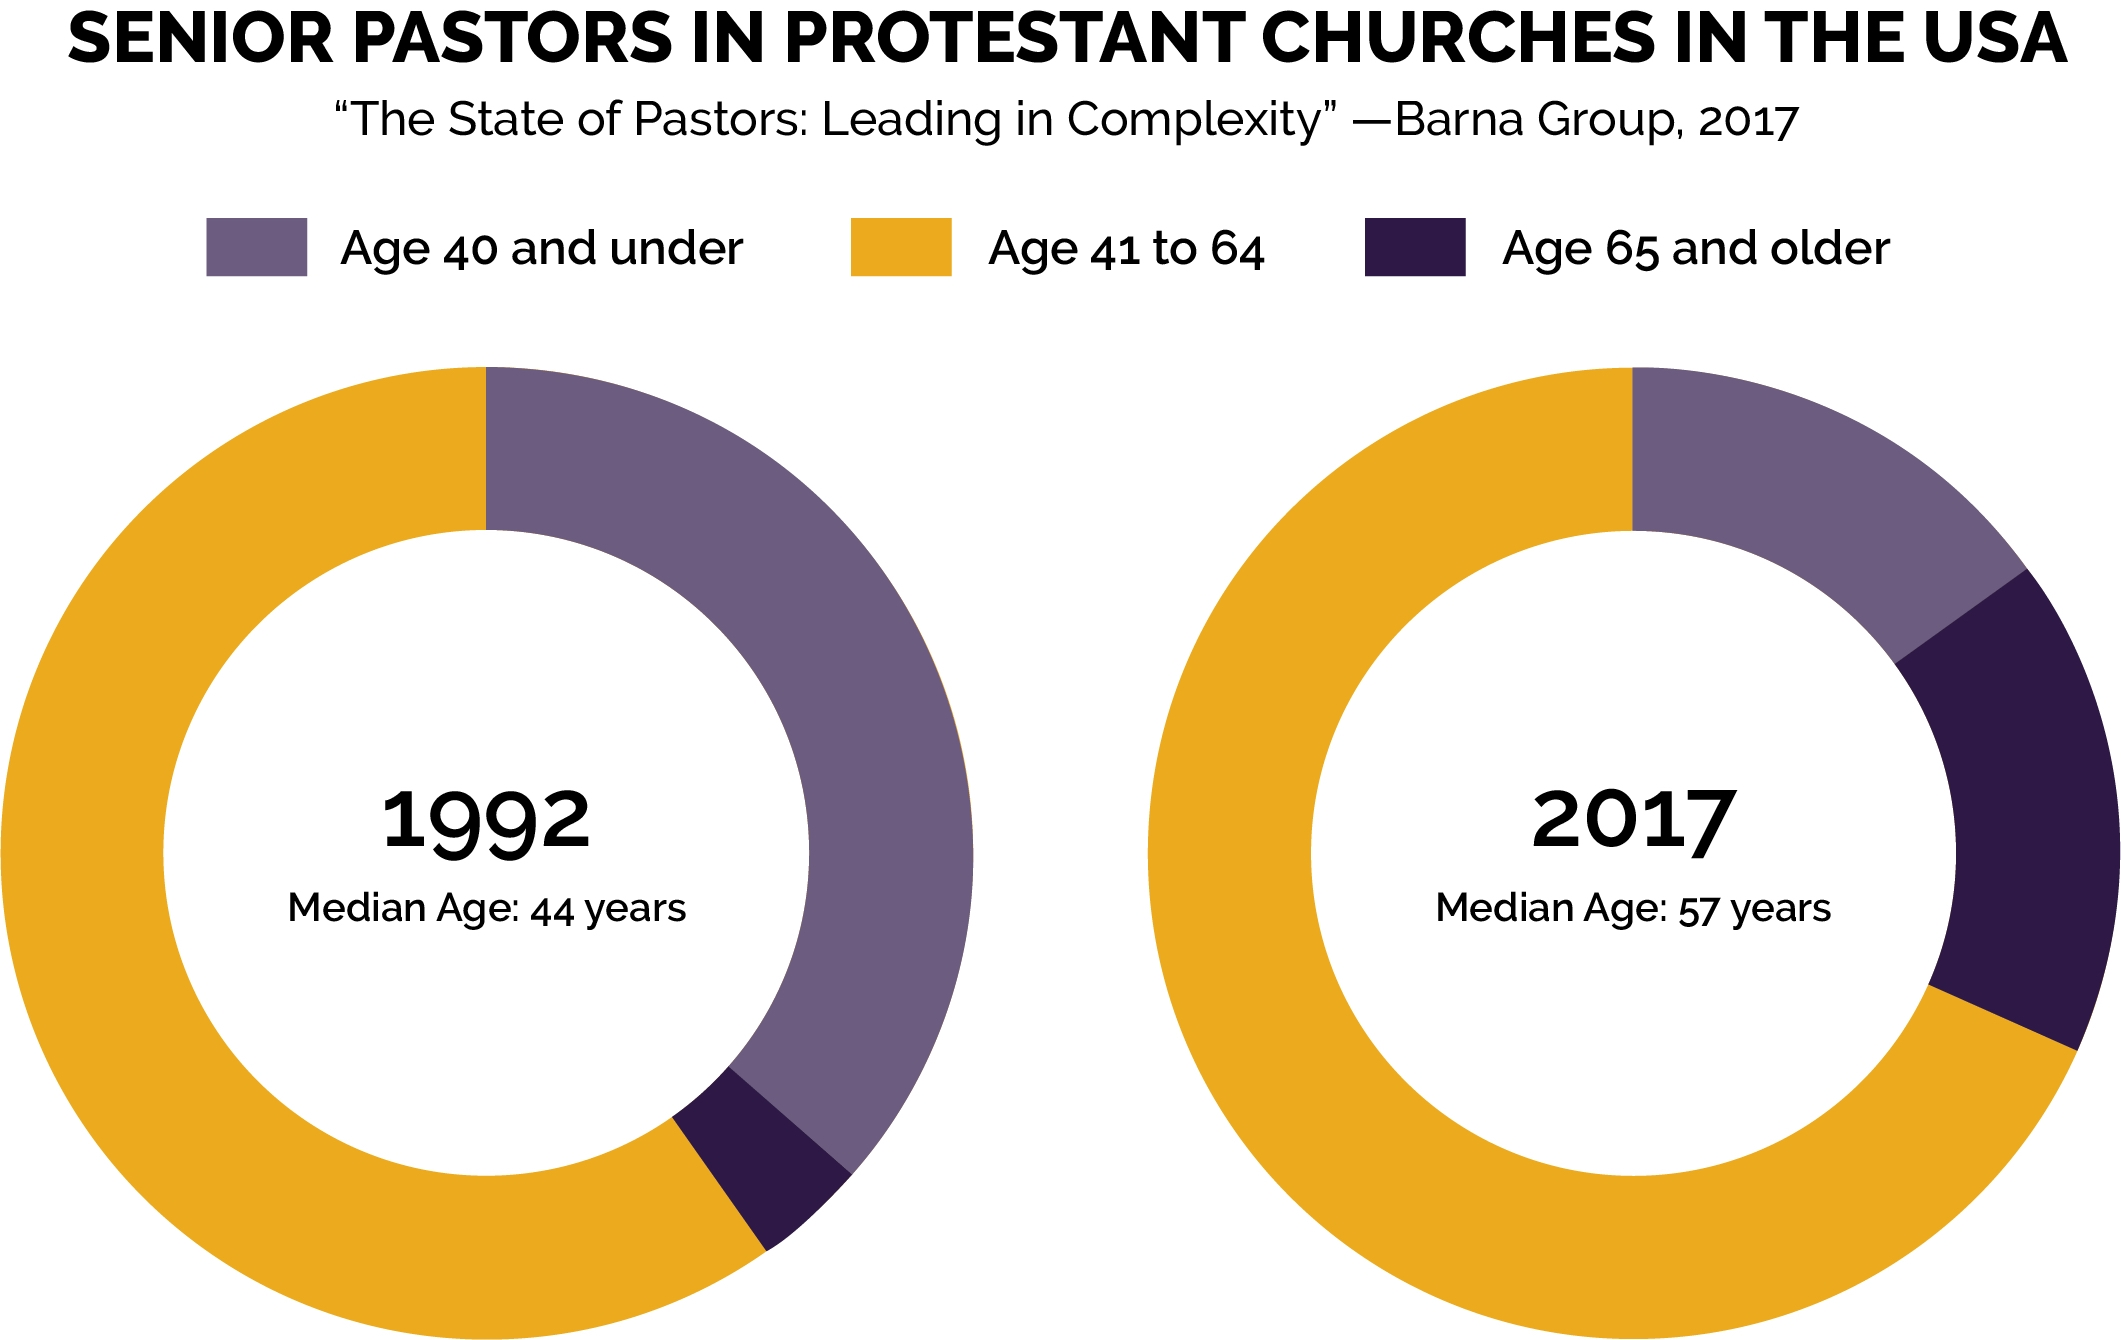 Statistics on Senior pastors in the Protestant Churches in the USA